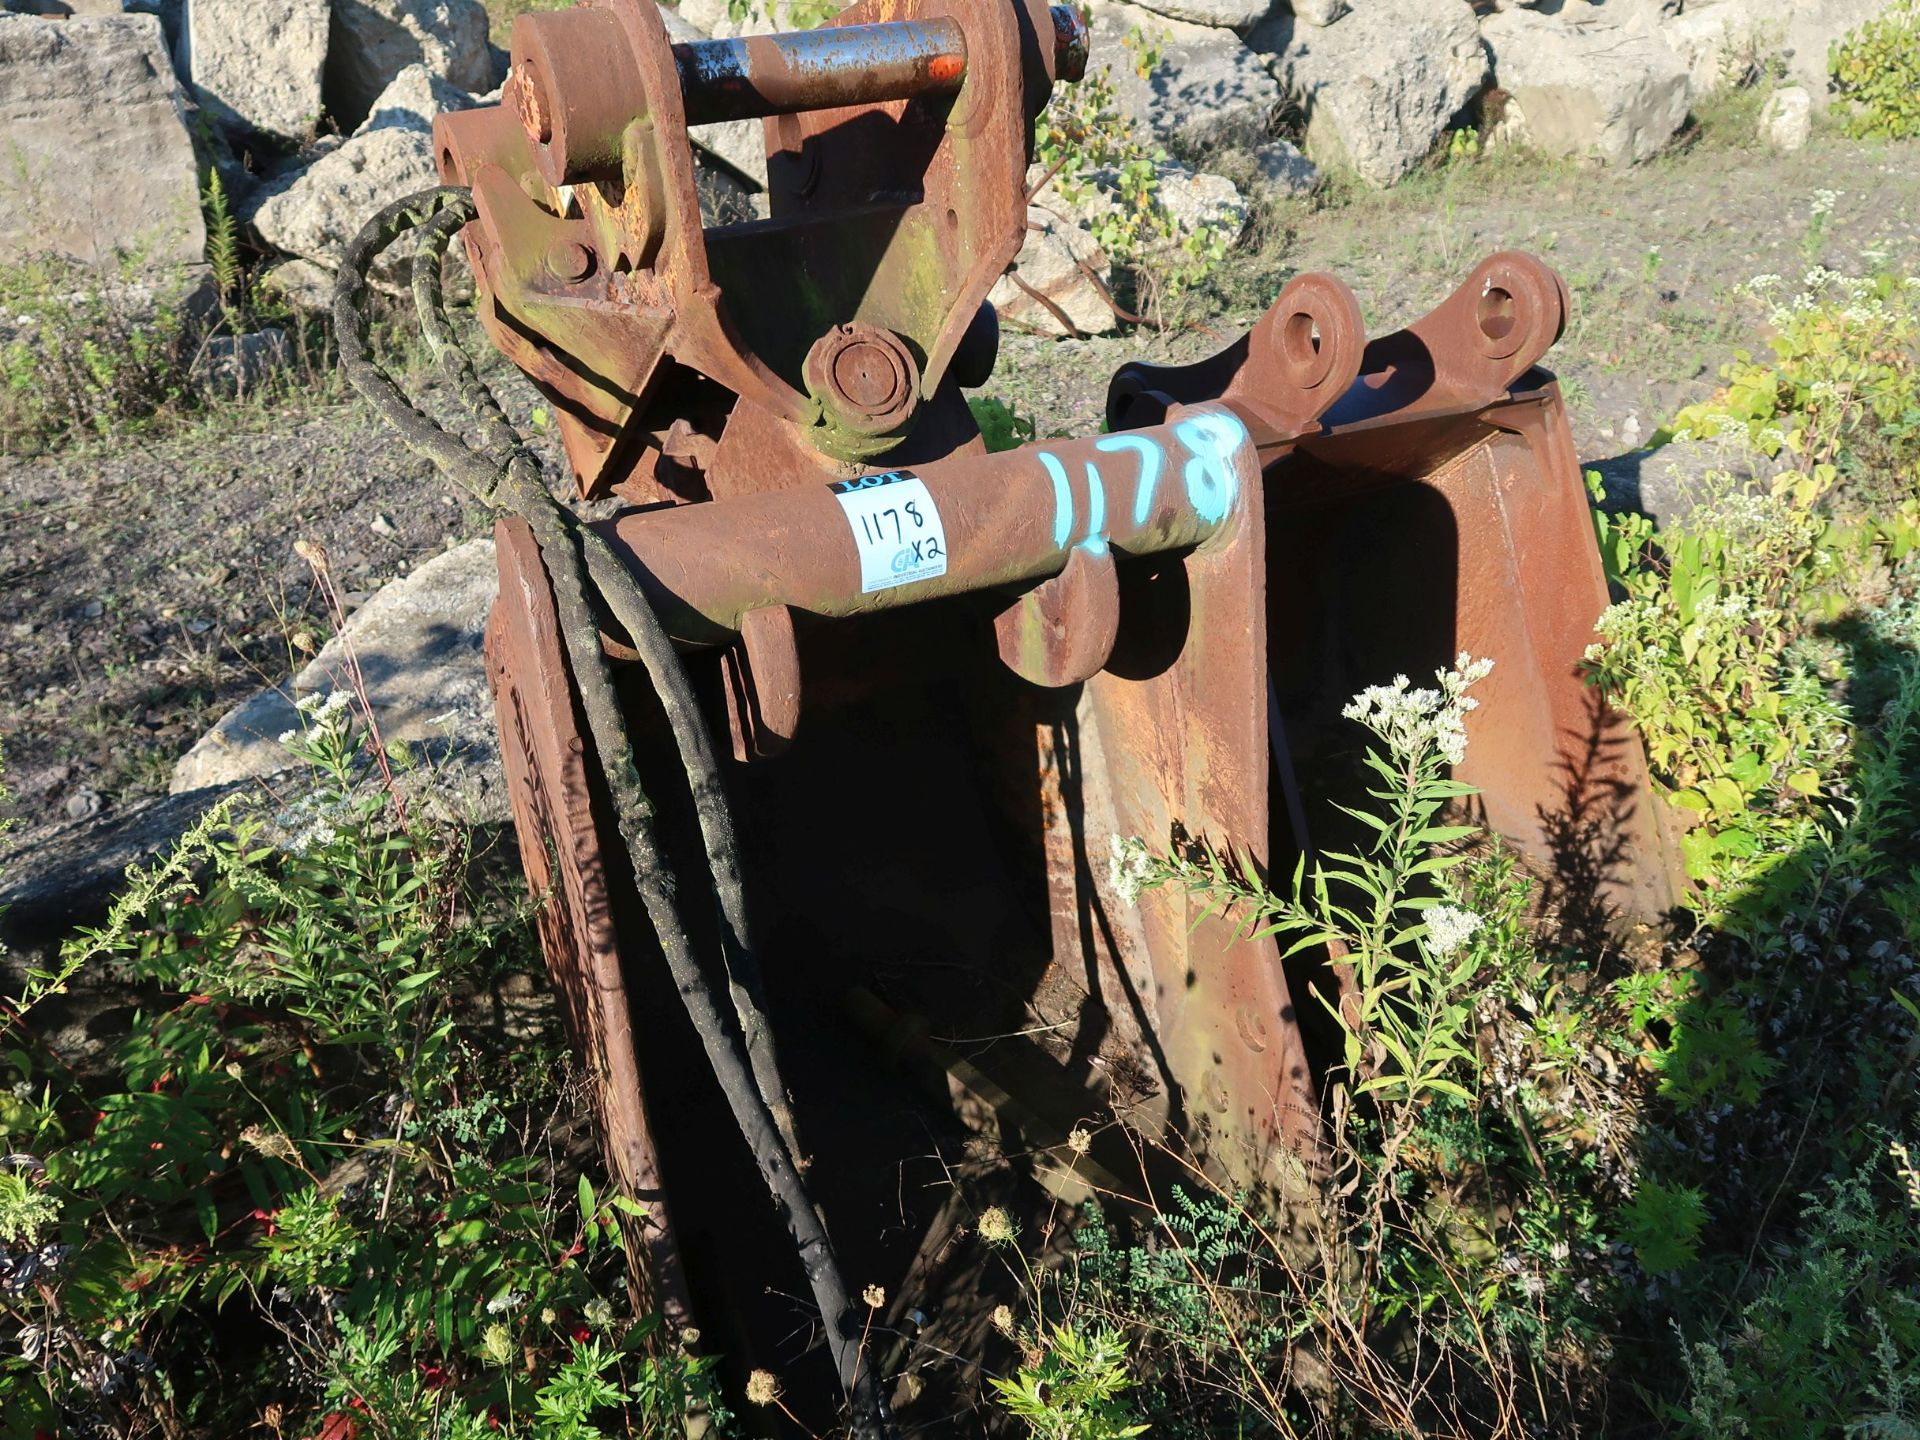 """Lot 1178 - 28"""" AND 32"""" EXCAVATOR BUCKETS"""